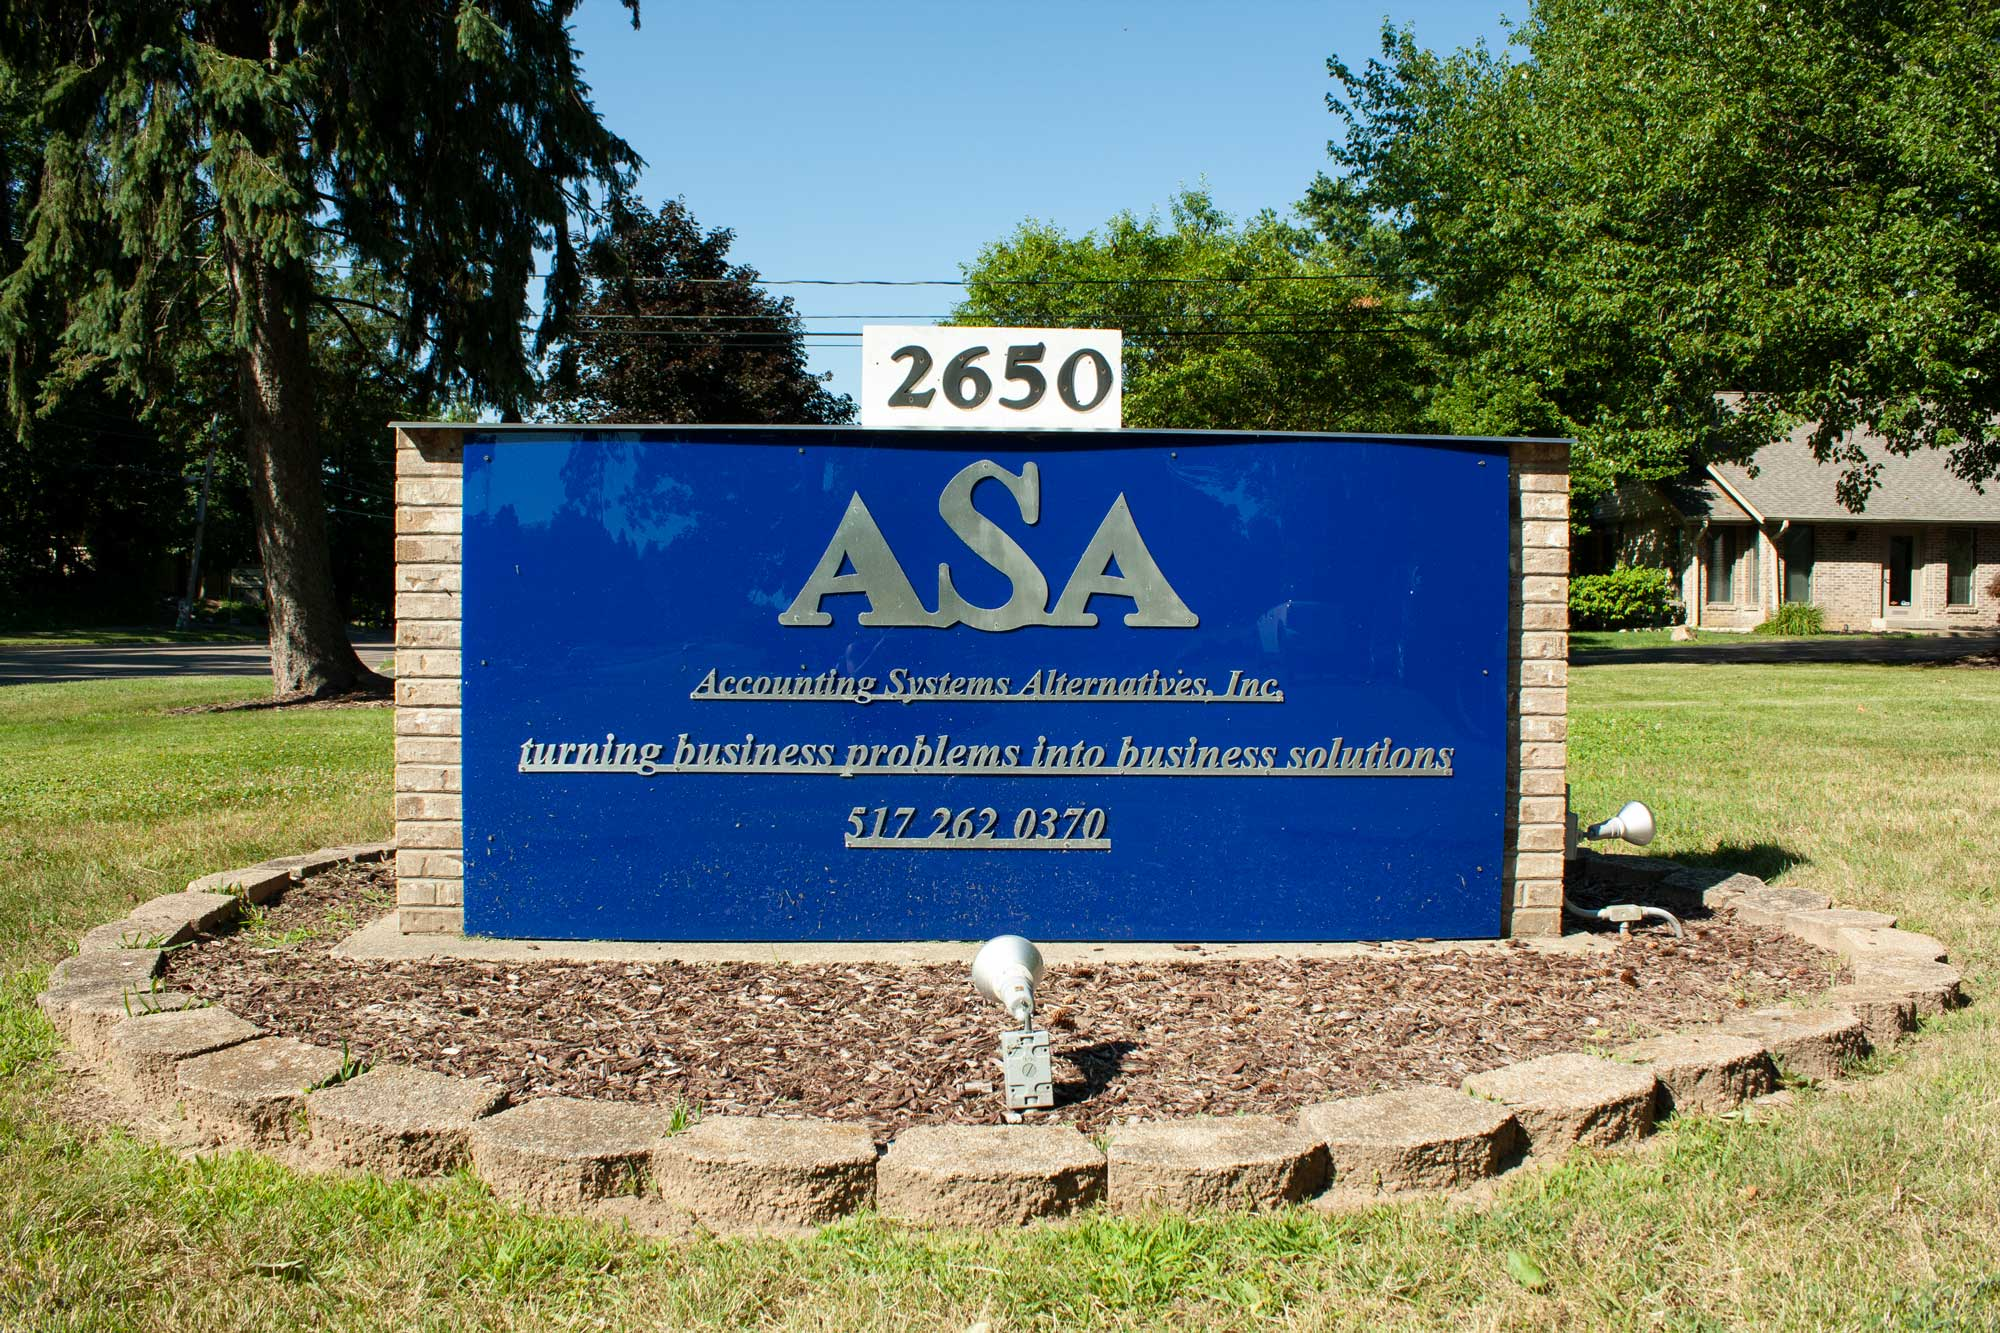 asa-imaged-header.jpg